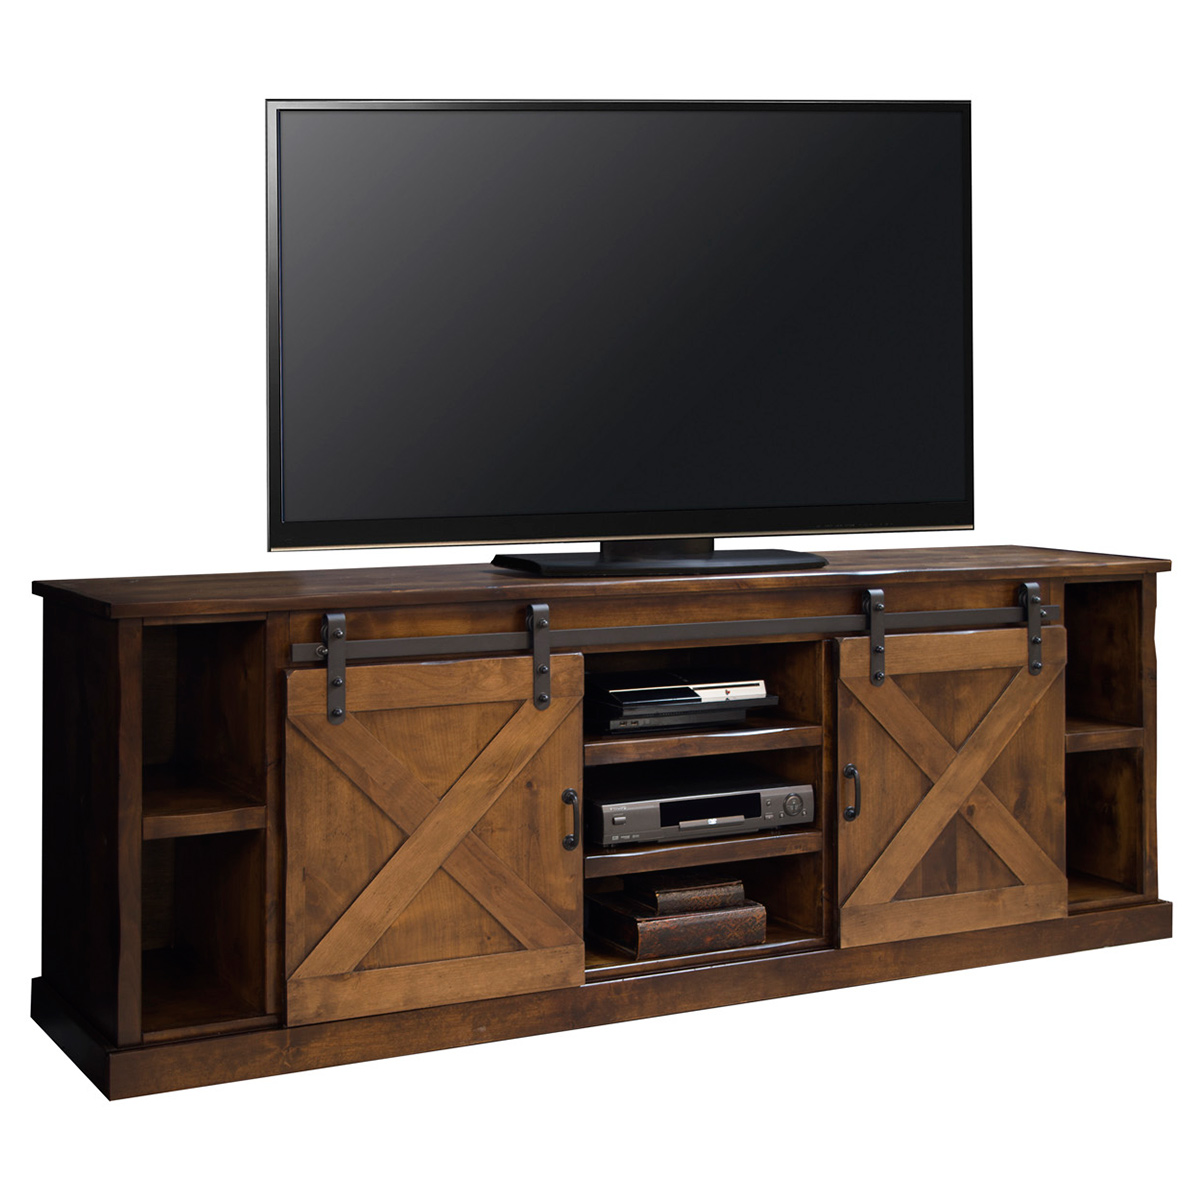 90 Inch Tv Console Home Ideas